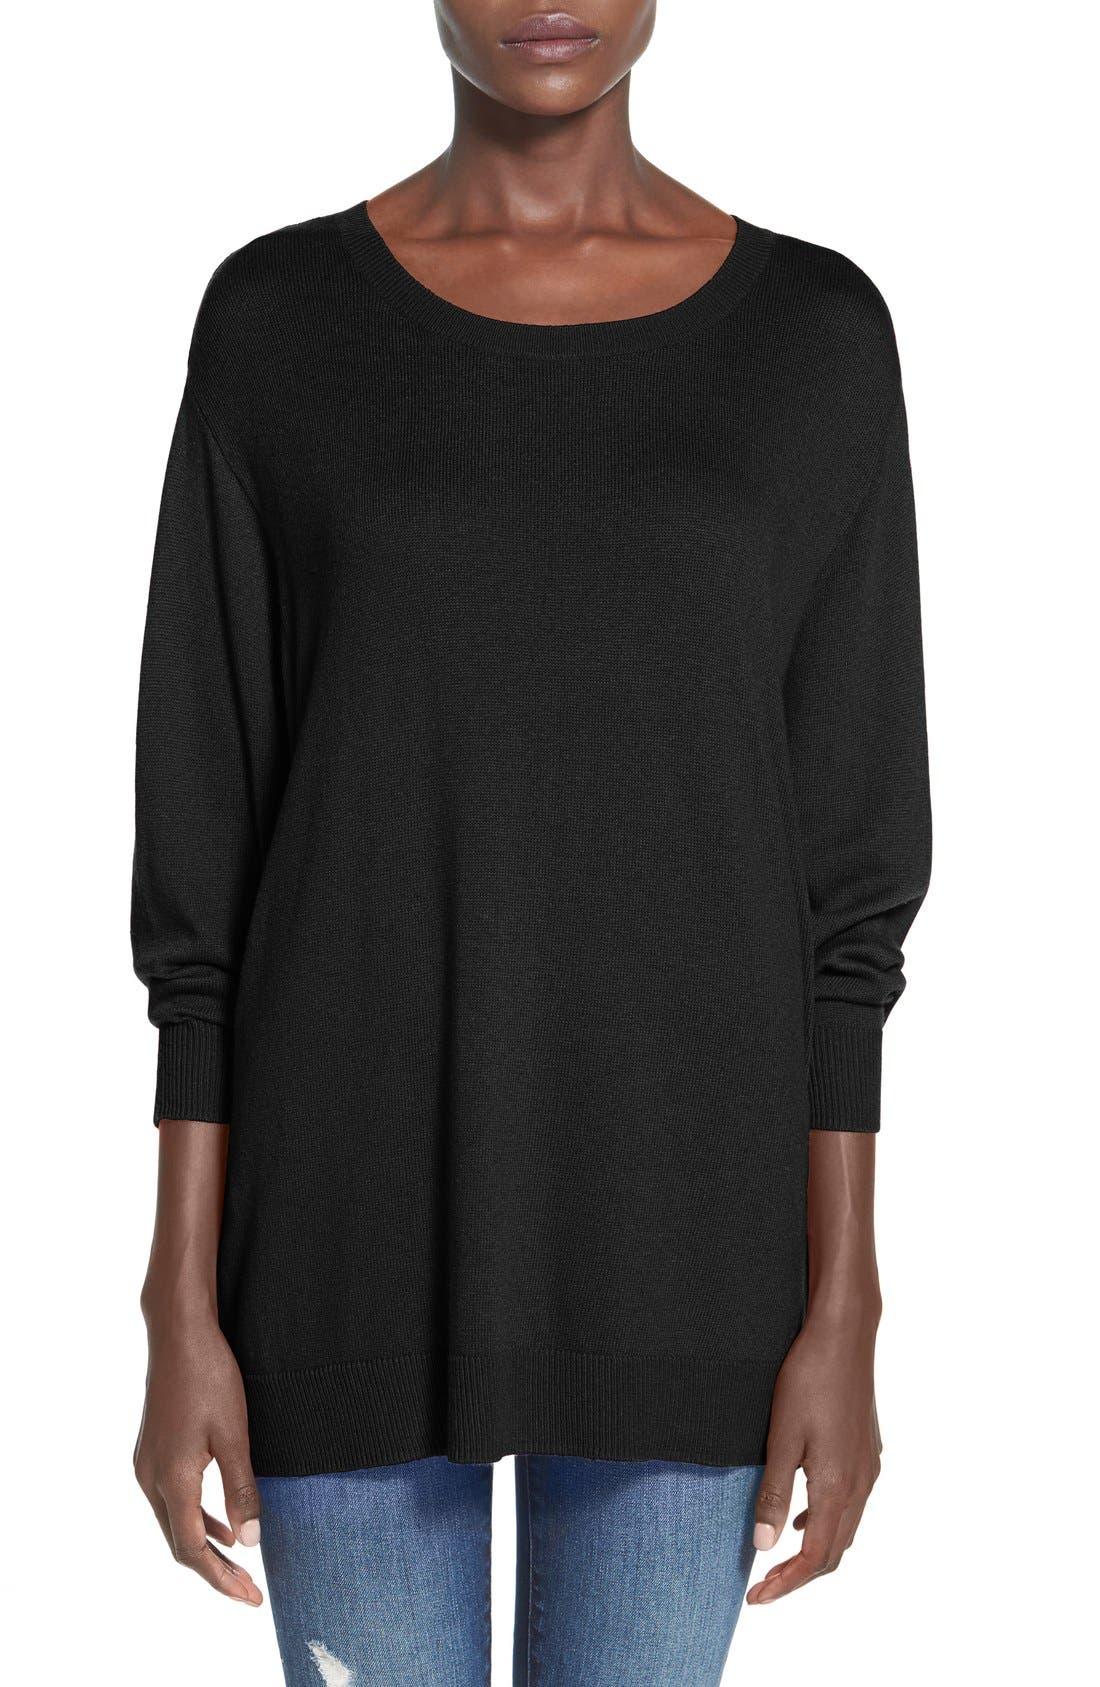 DolmanSleeve Pullover,                         Main,                         color, 001